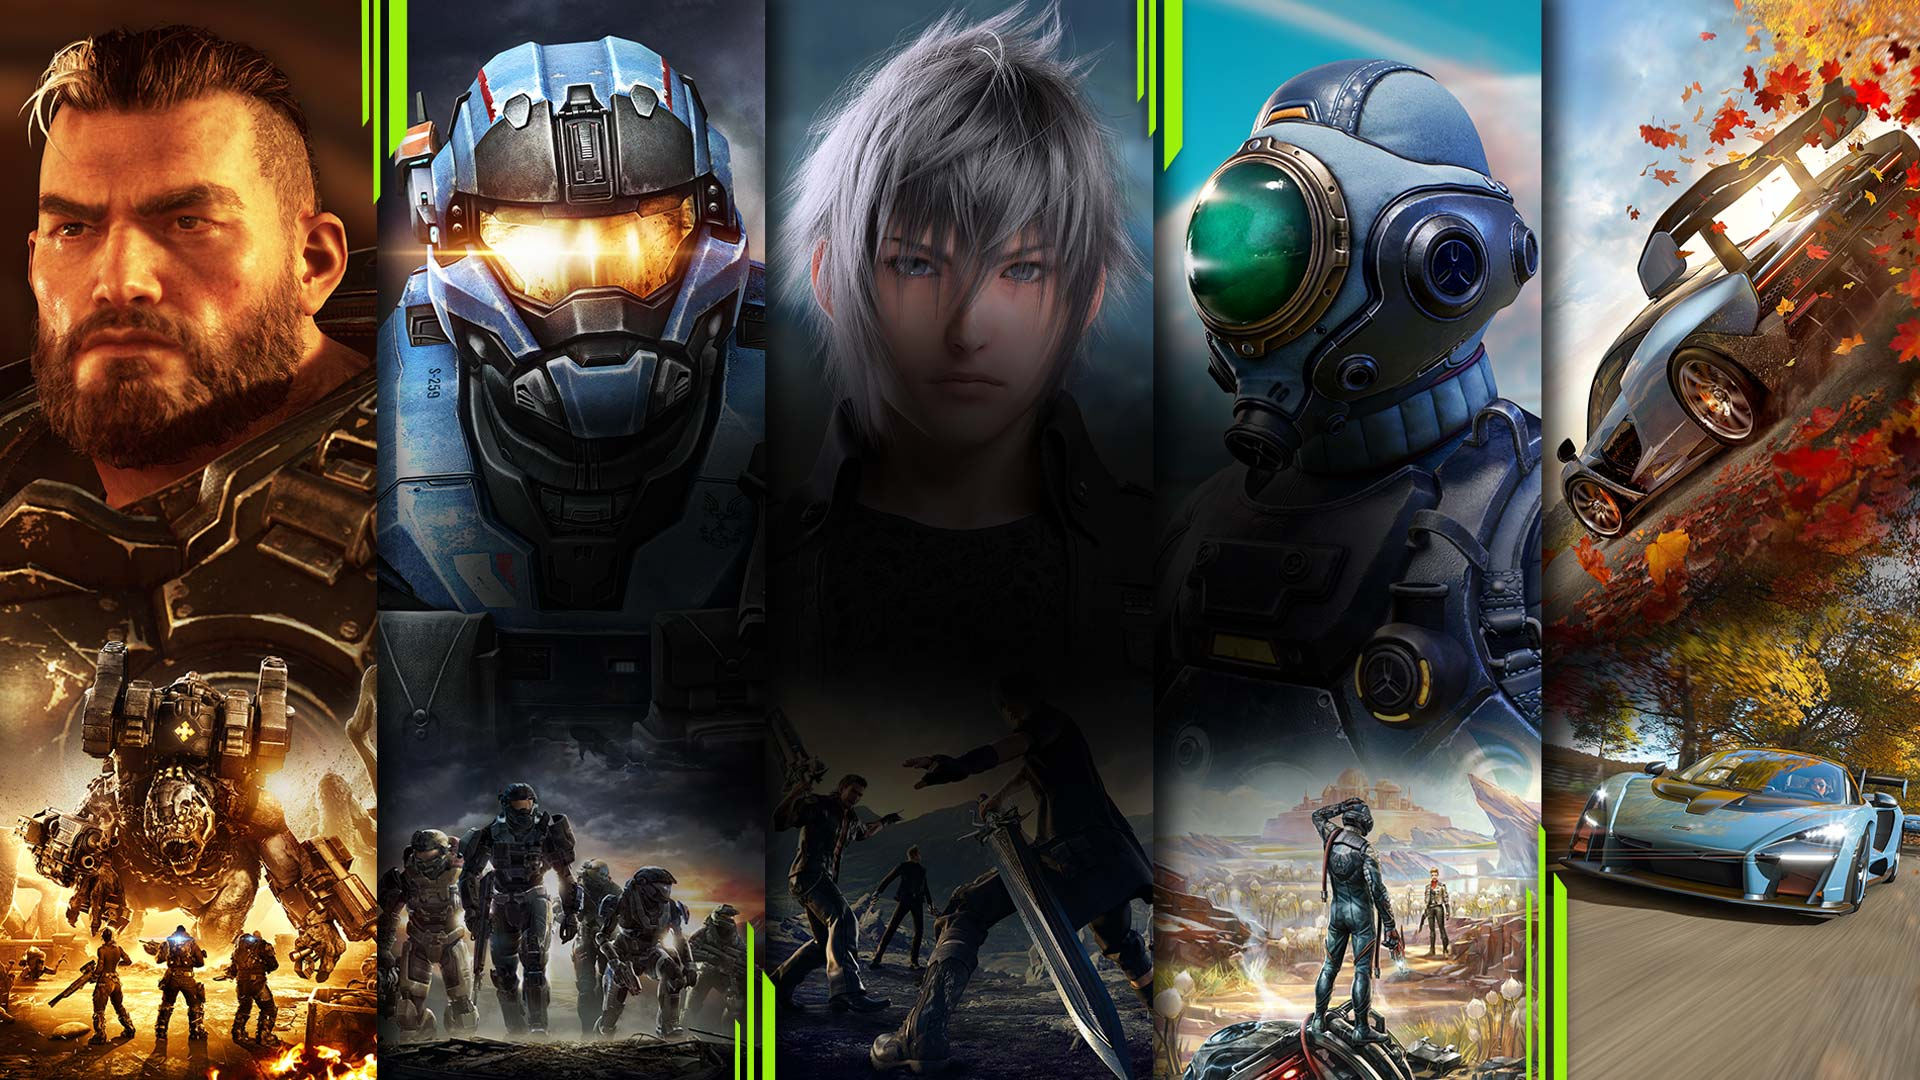 A montage of games available on Xbox Game Pass for PC, including Gears of War, Halo, Final Fantasy, The Outer Worlds, and Forza.